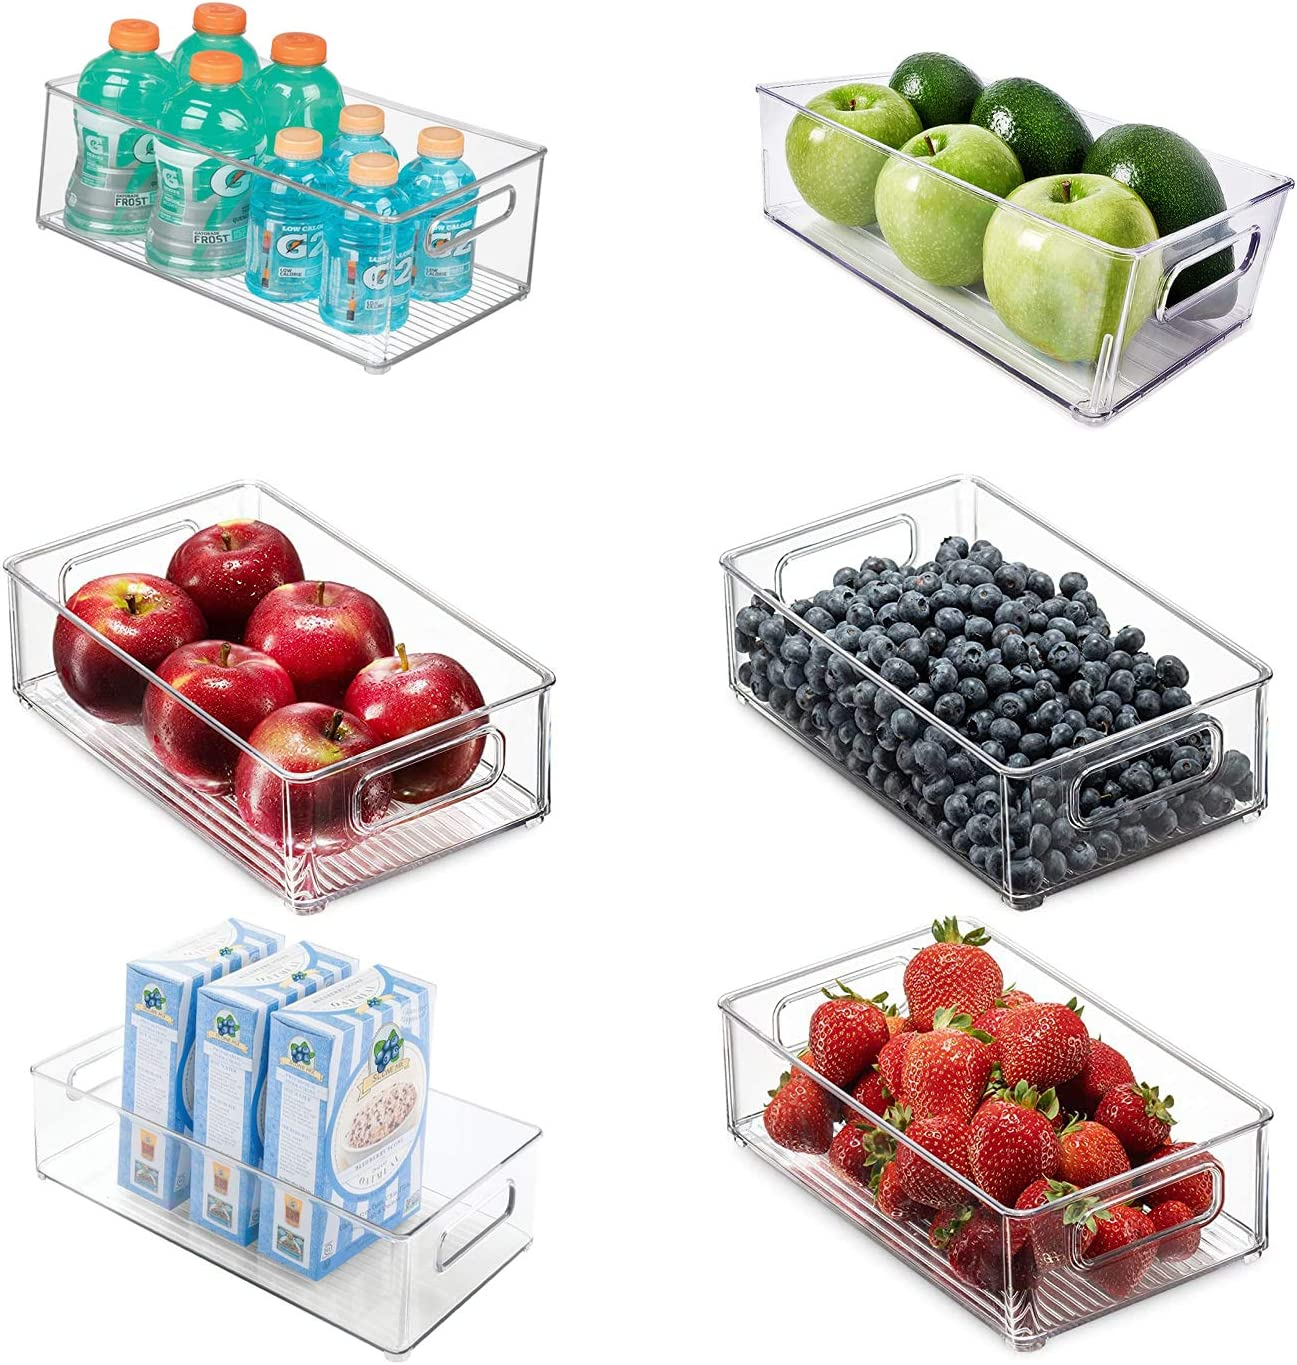 6 Pack Refrigerator Organizer Bins—Stackable Organizer Bins with Handles for Freezer—Clear Plastic Pantry Food Storage Rack- Food Safe